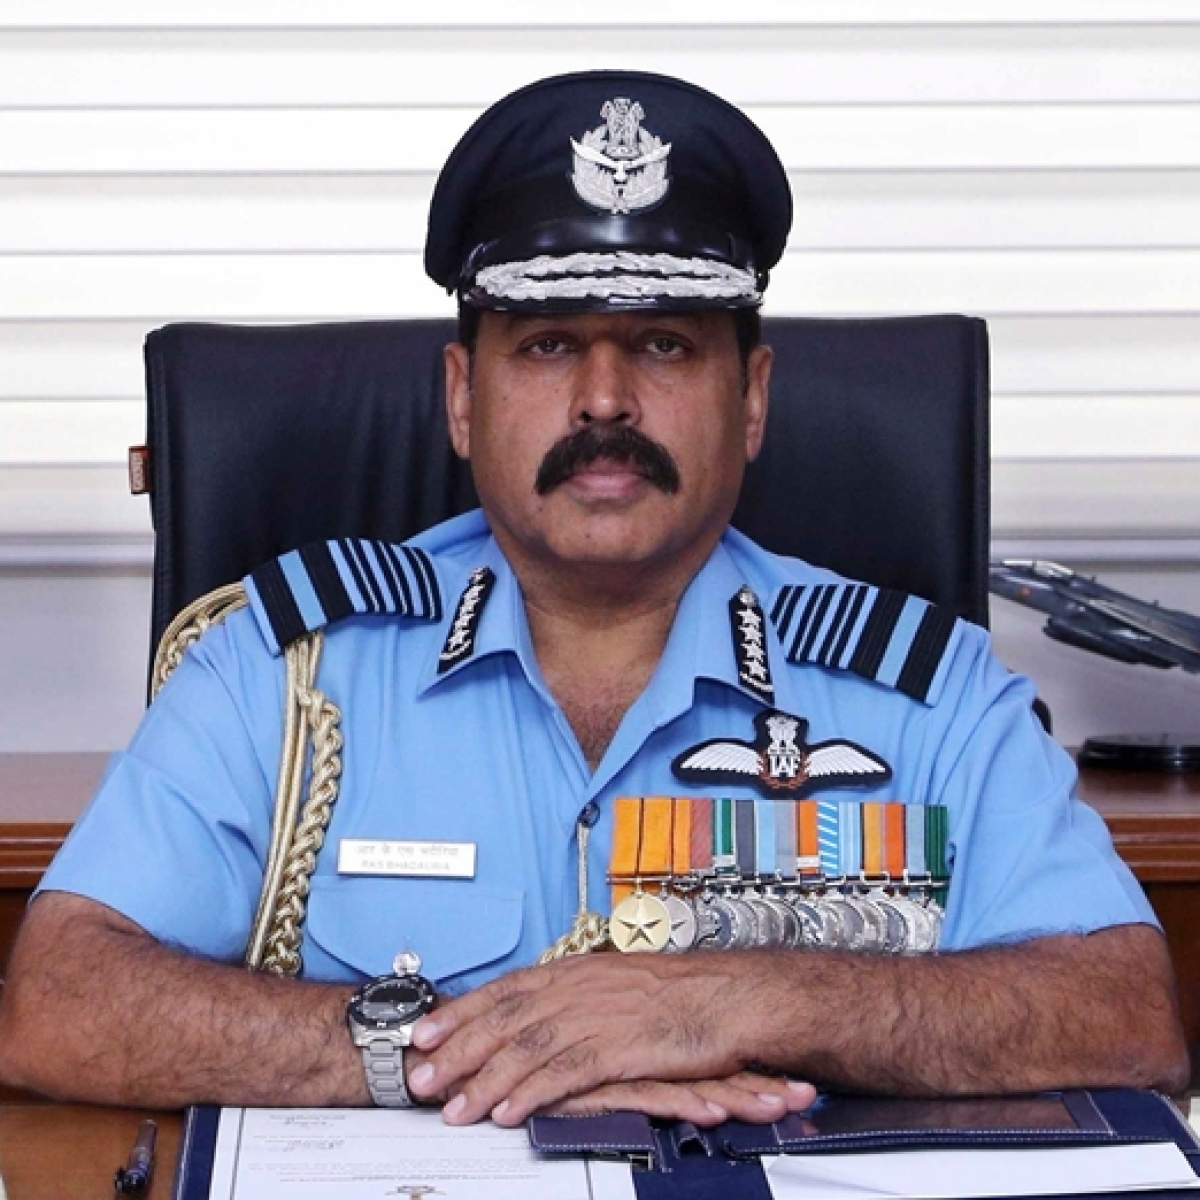 IAF monitoring situation along Indo-Pak border; ready for Balakot-type strike: new IAF Chief Bhadauria